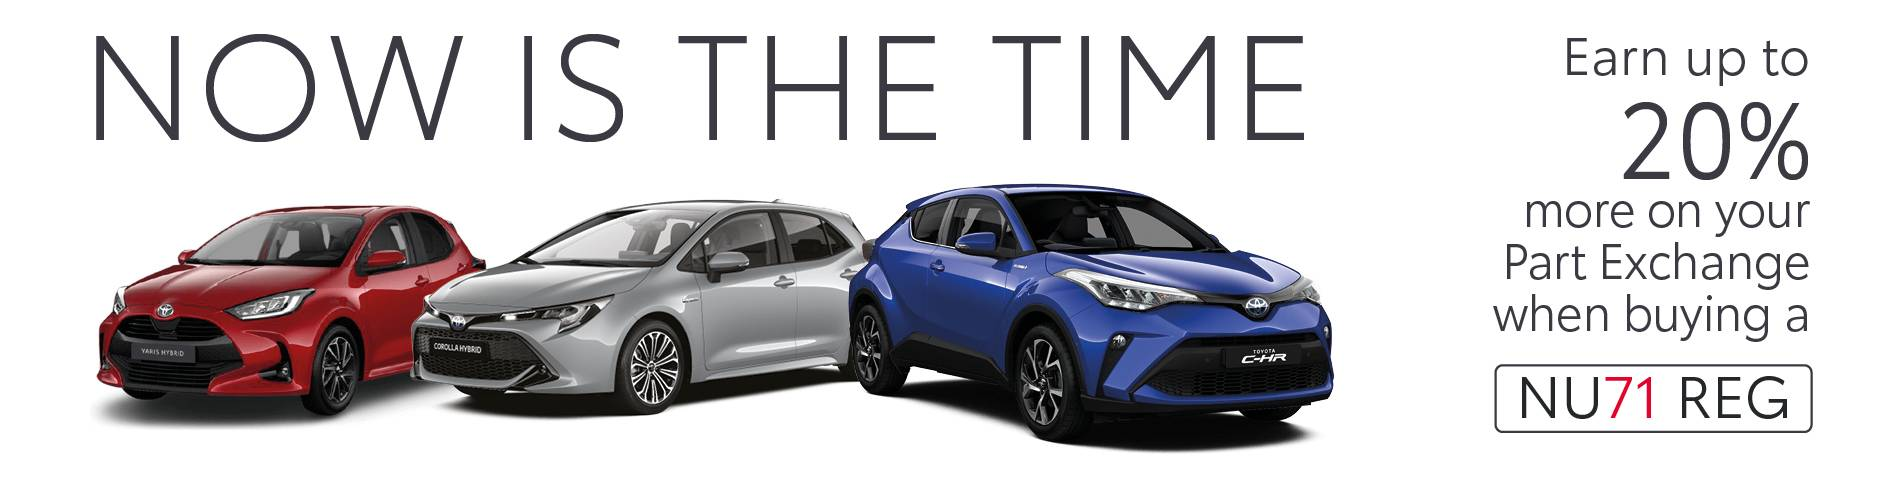 Now is the time Toyota